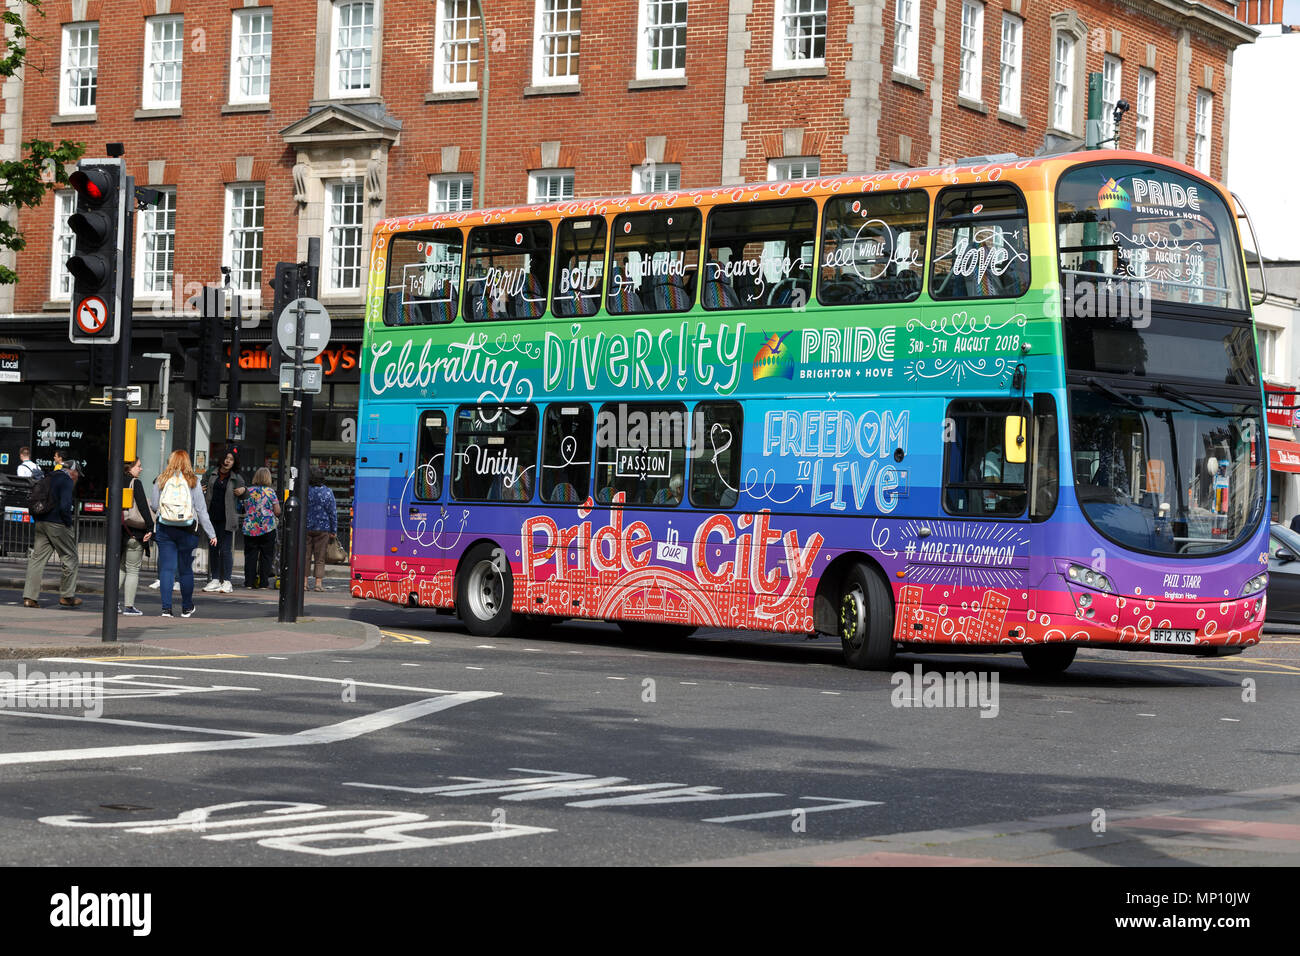 a-colourful-bus-on-the-corner-of-kemptow